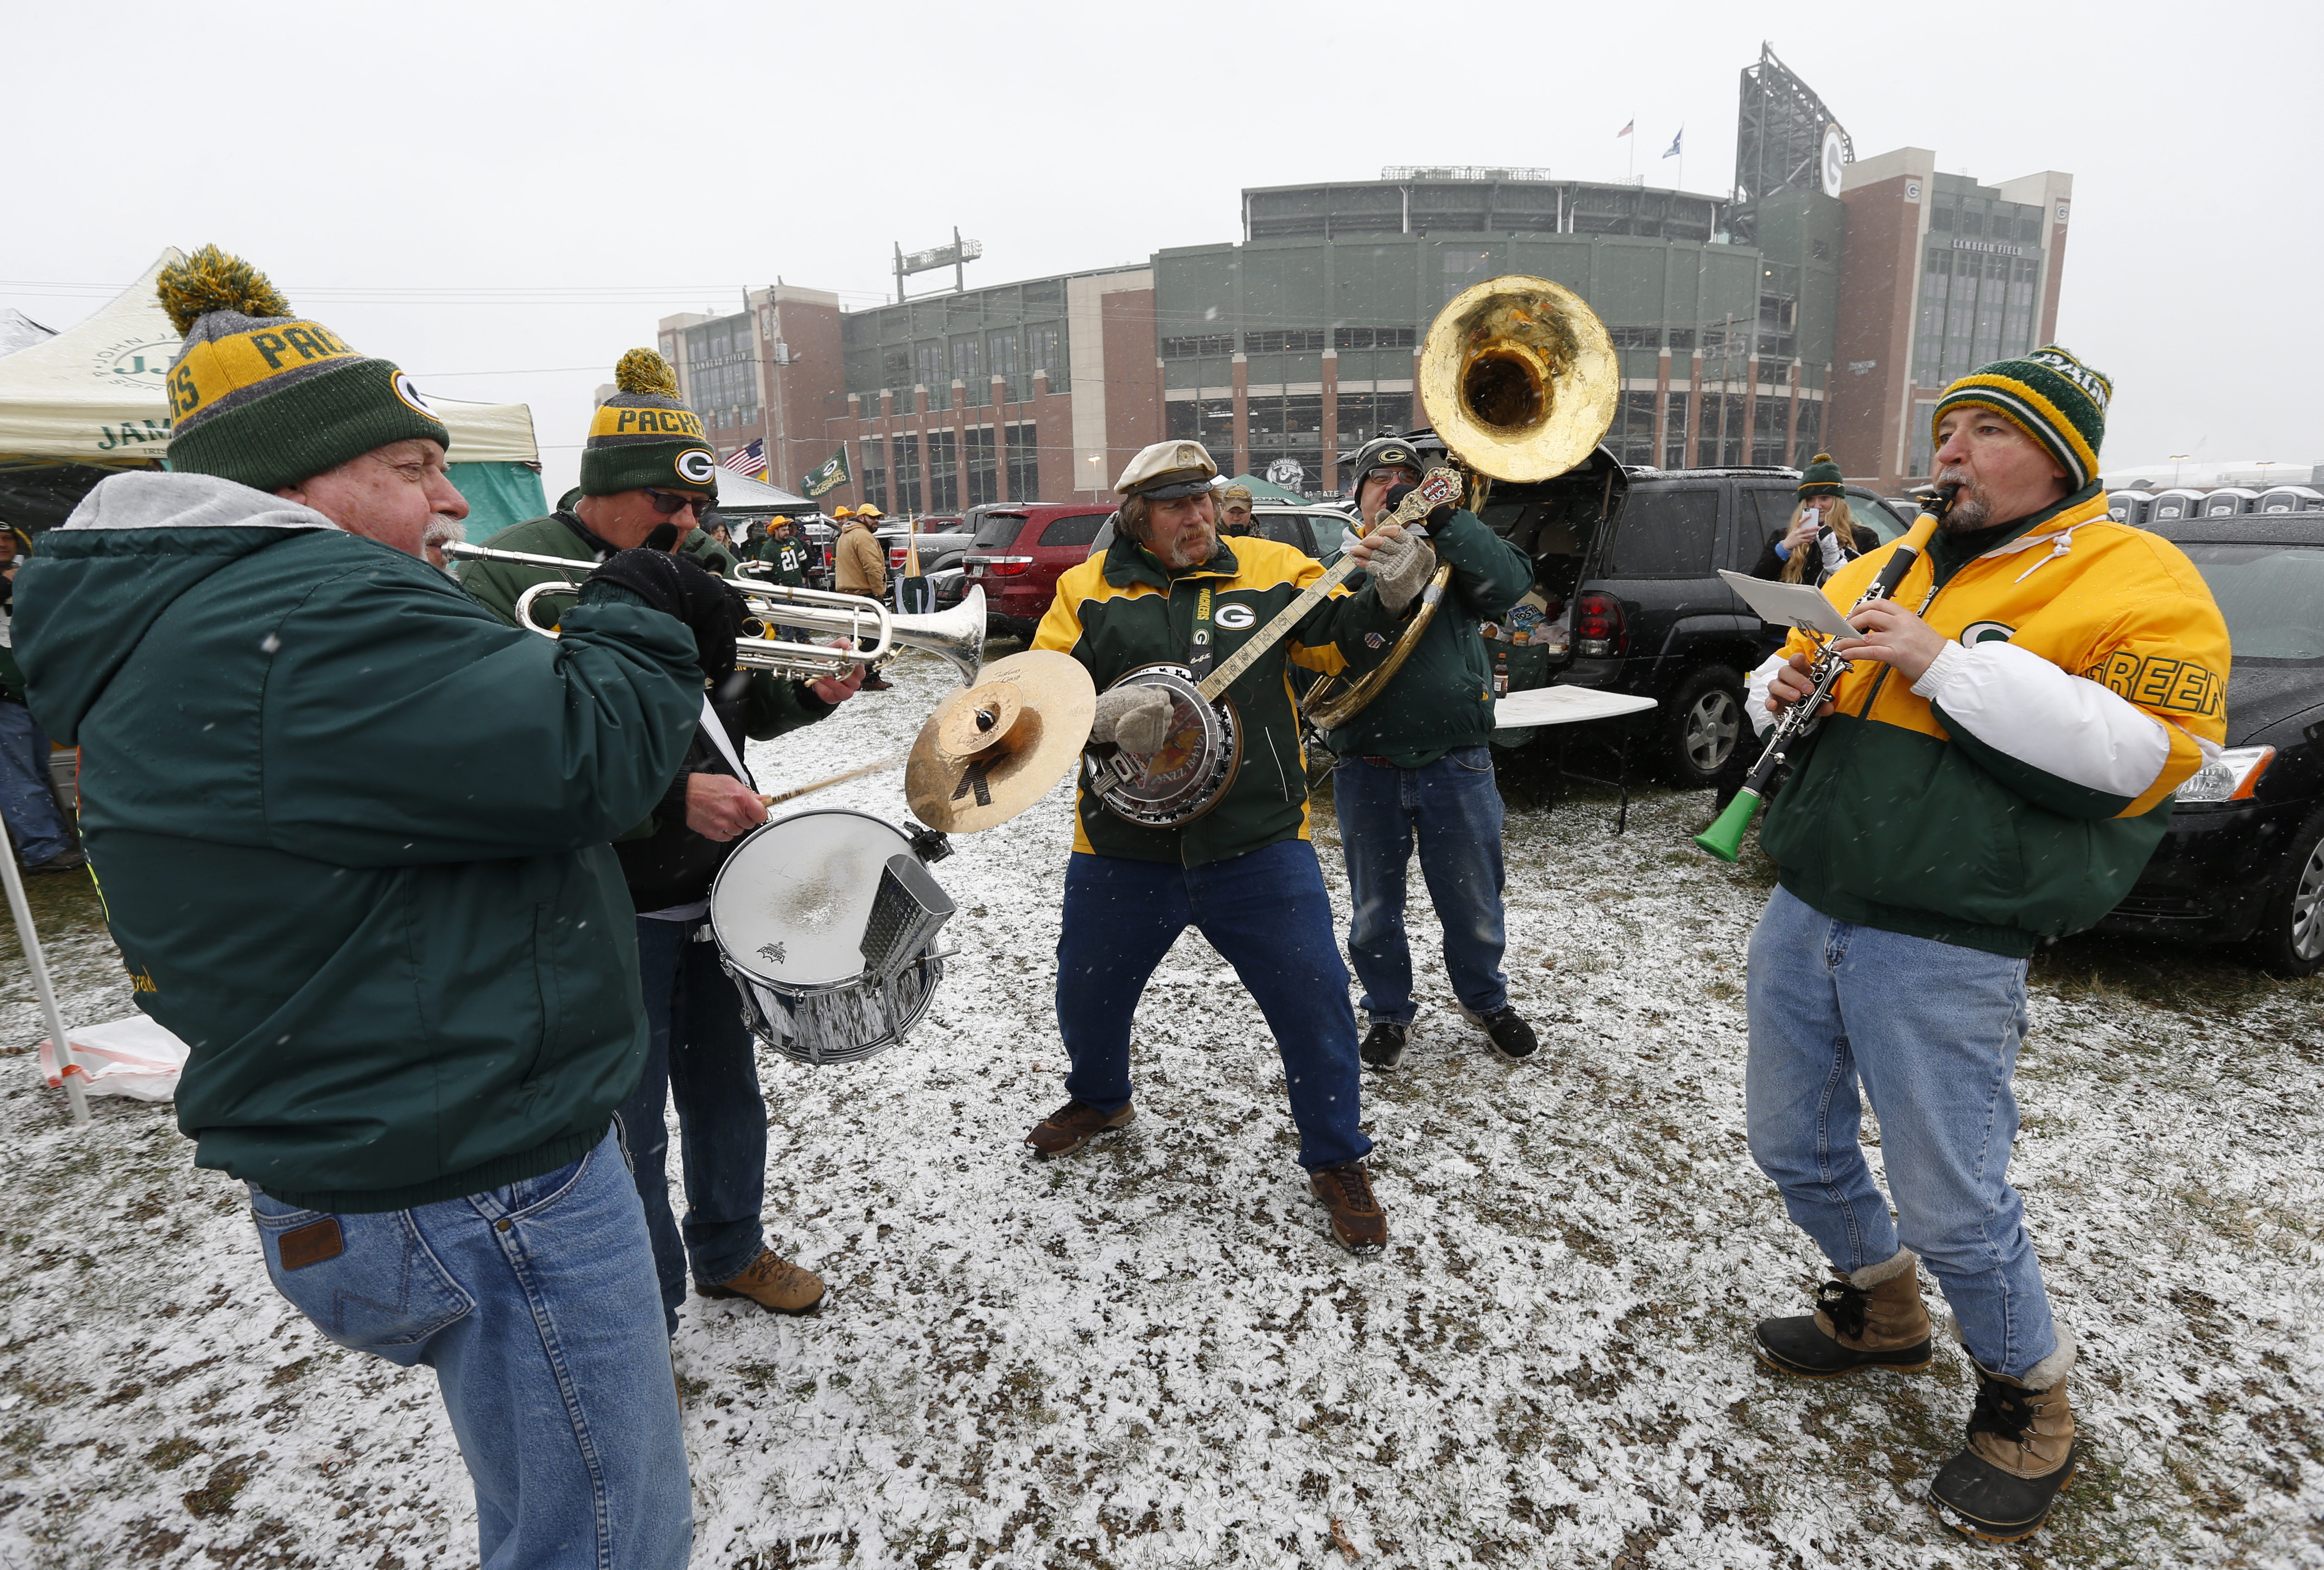 A band plays outside Lambeau Field before an NFL football game between the Green Bay Packers and the Houston Texans Sunday, Dec. 4, 2016, in Green Bay, Wis. (AP Photo/Mike Roemer)